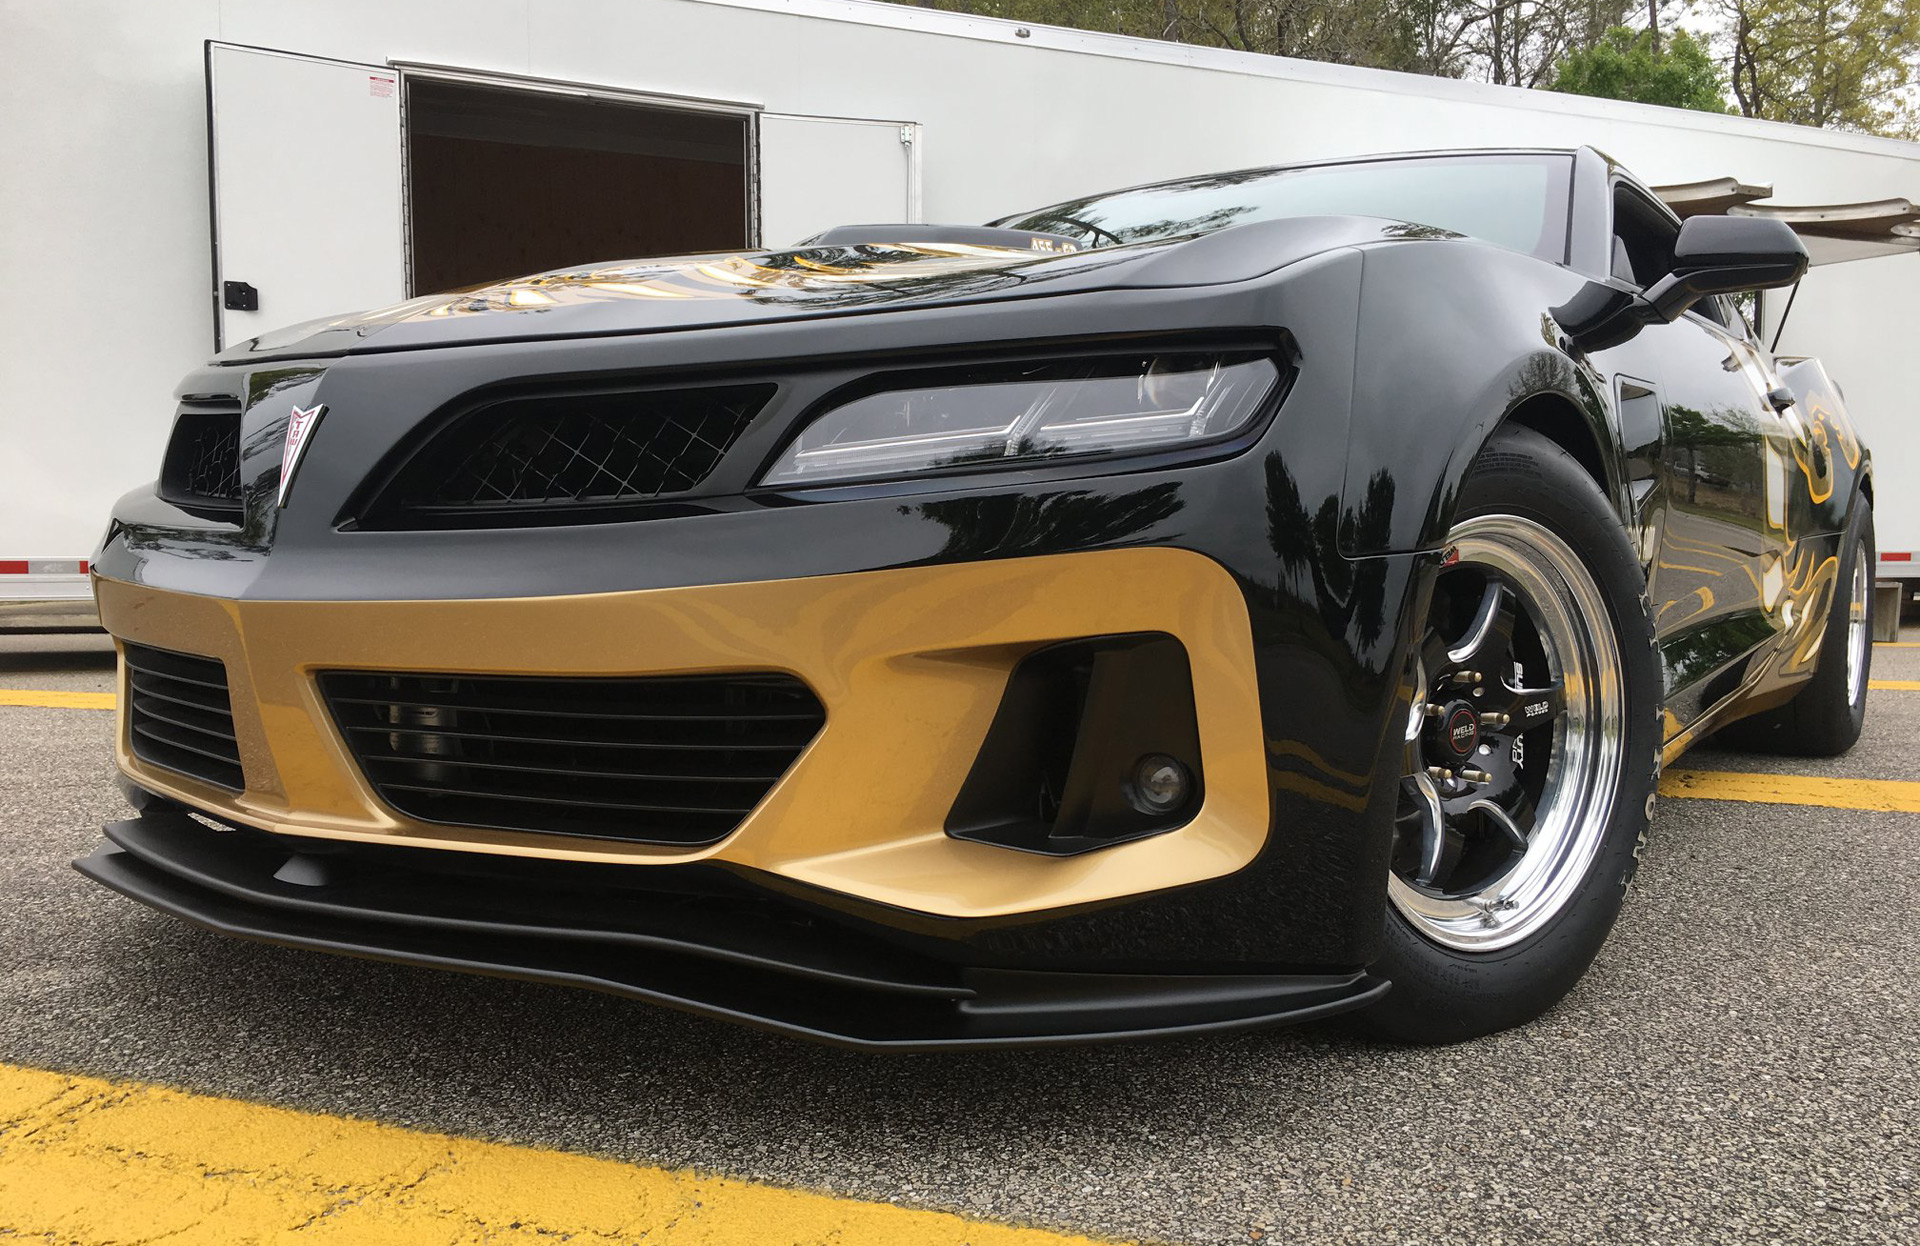 Trans Am Depot makes 455 Super Duty drag car with 1,100 horsepower